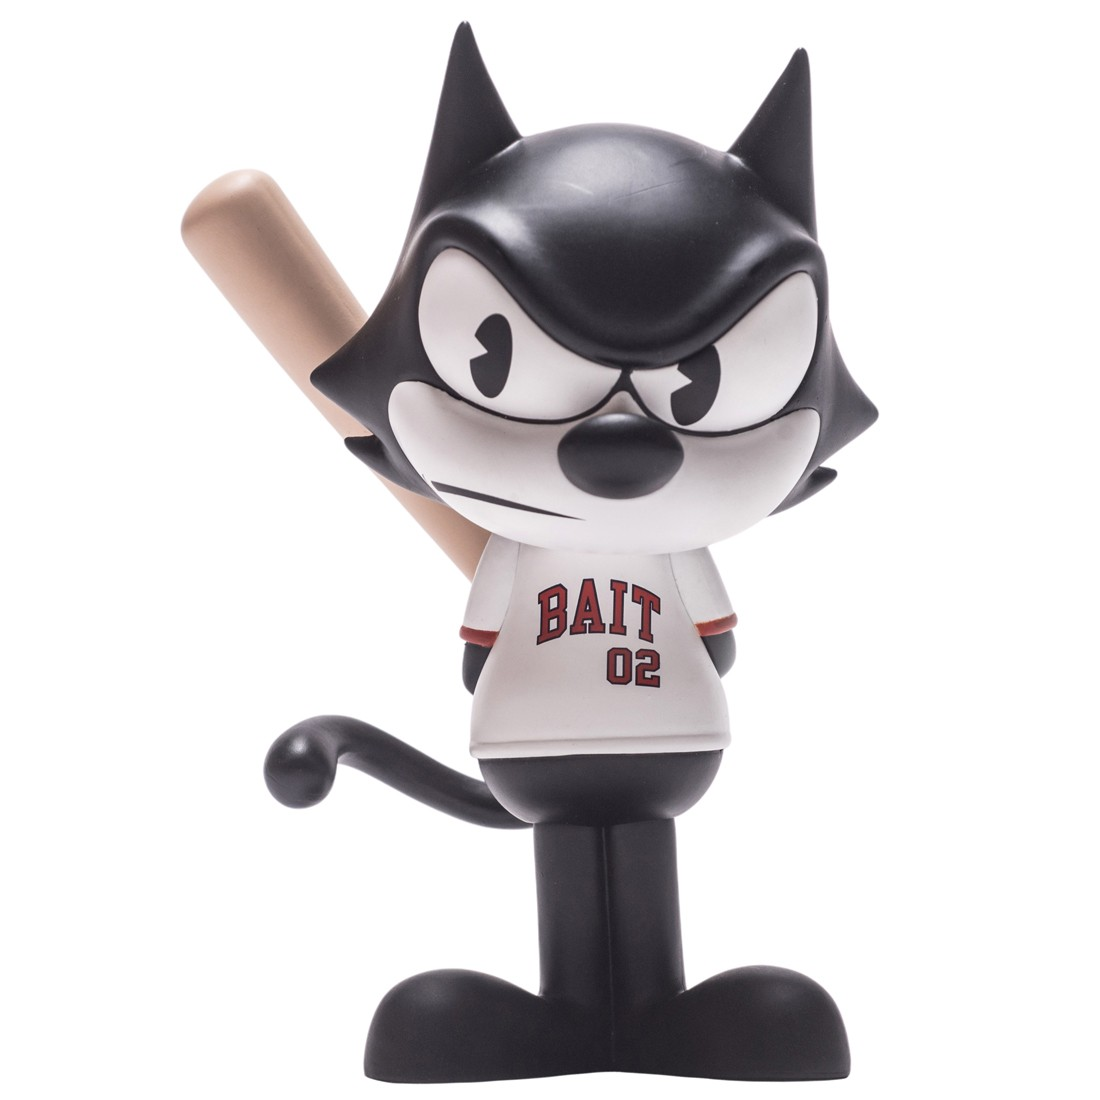 BAIT x Dreamworks x SWITCH Collectibles Felix the Cat Slugger 6 Inch Figure - Orange County Exclusive (black / white)